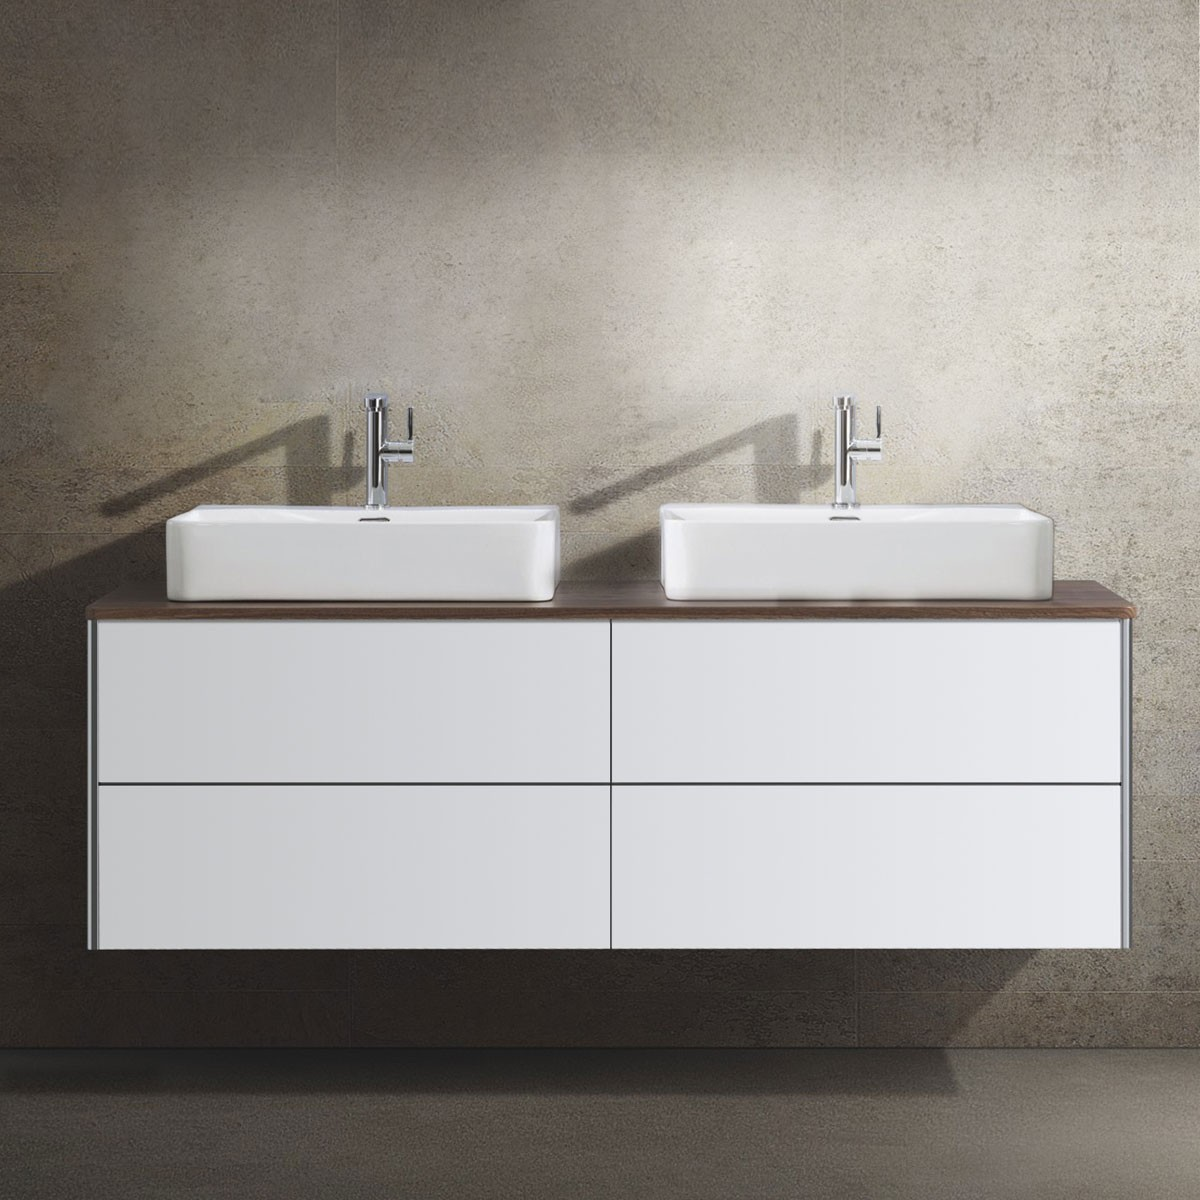 63 In. Wall Mount Vanity with White Double Basin (DW1604D-V)